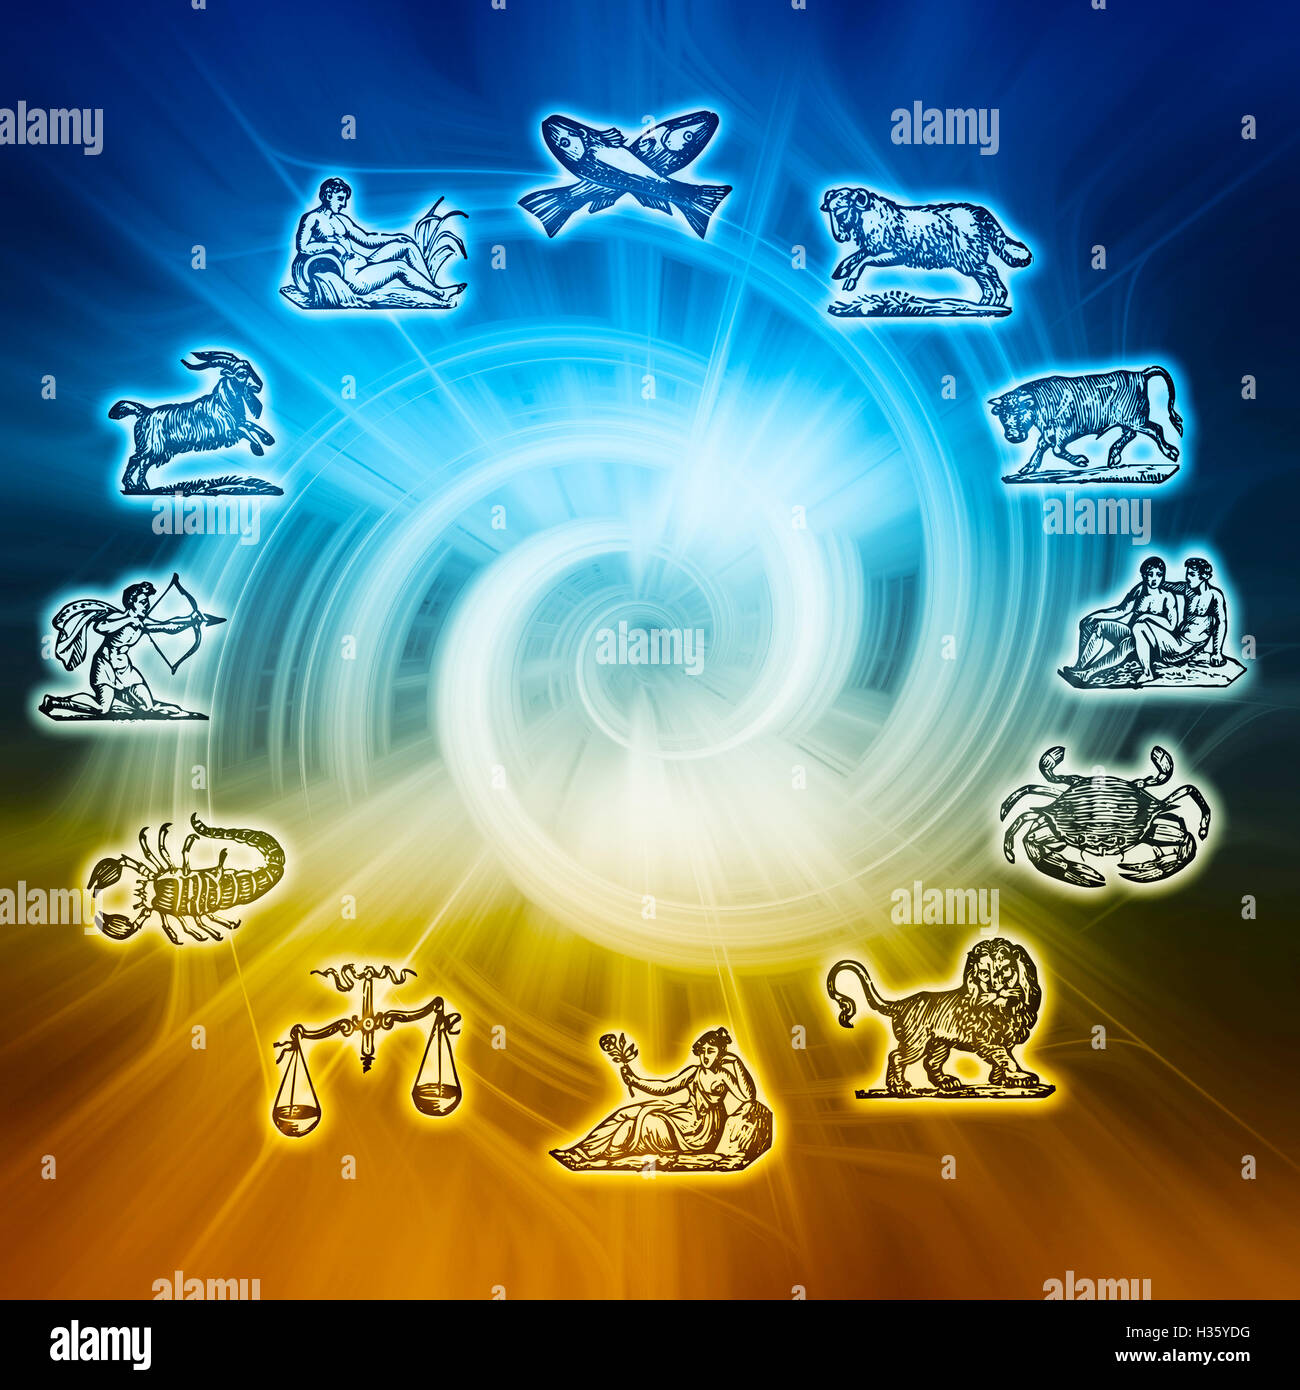 astrology and horoscope - Stock Image